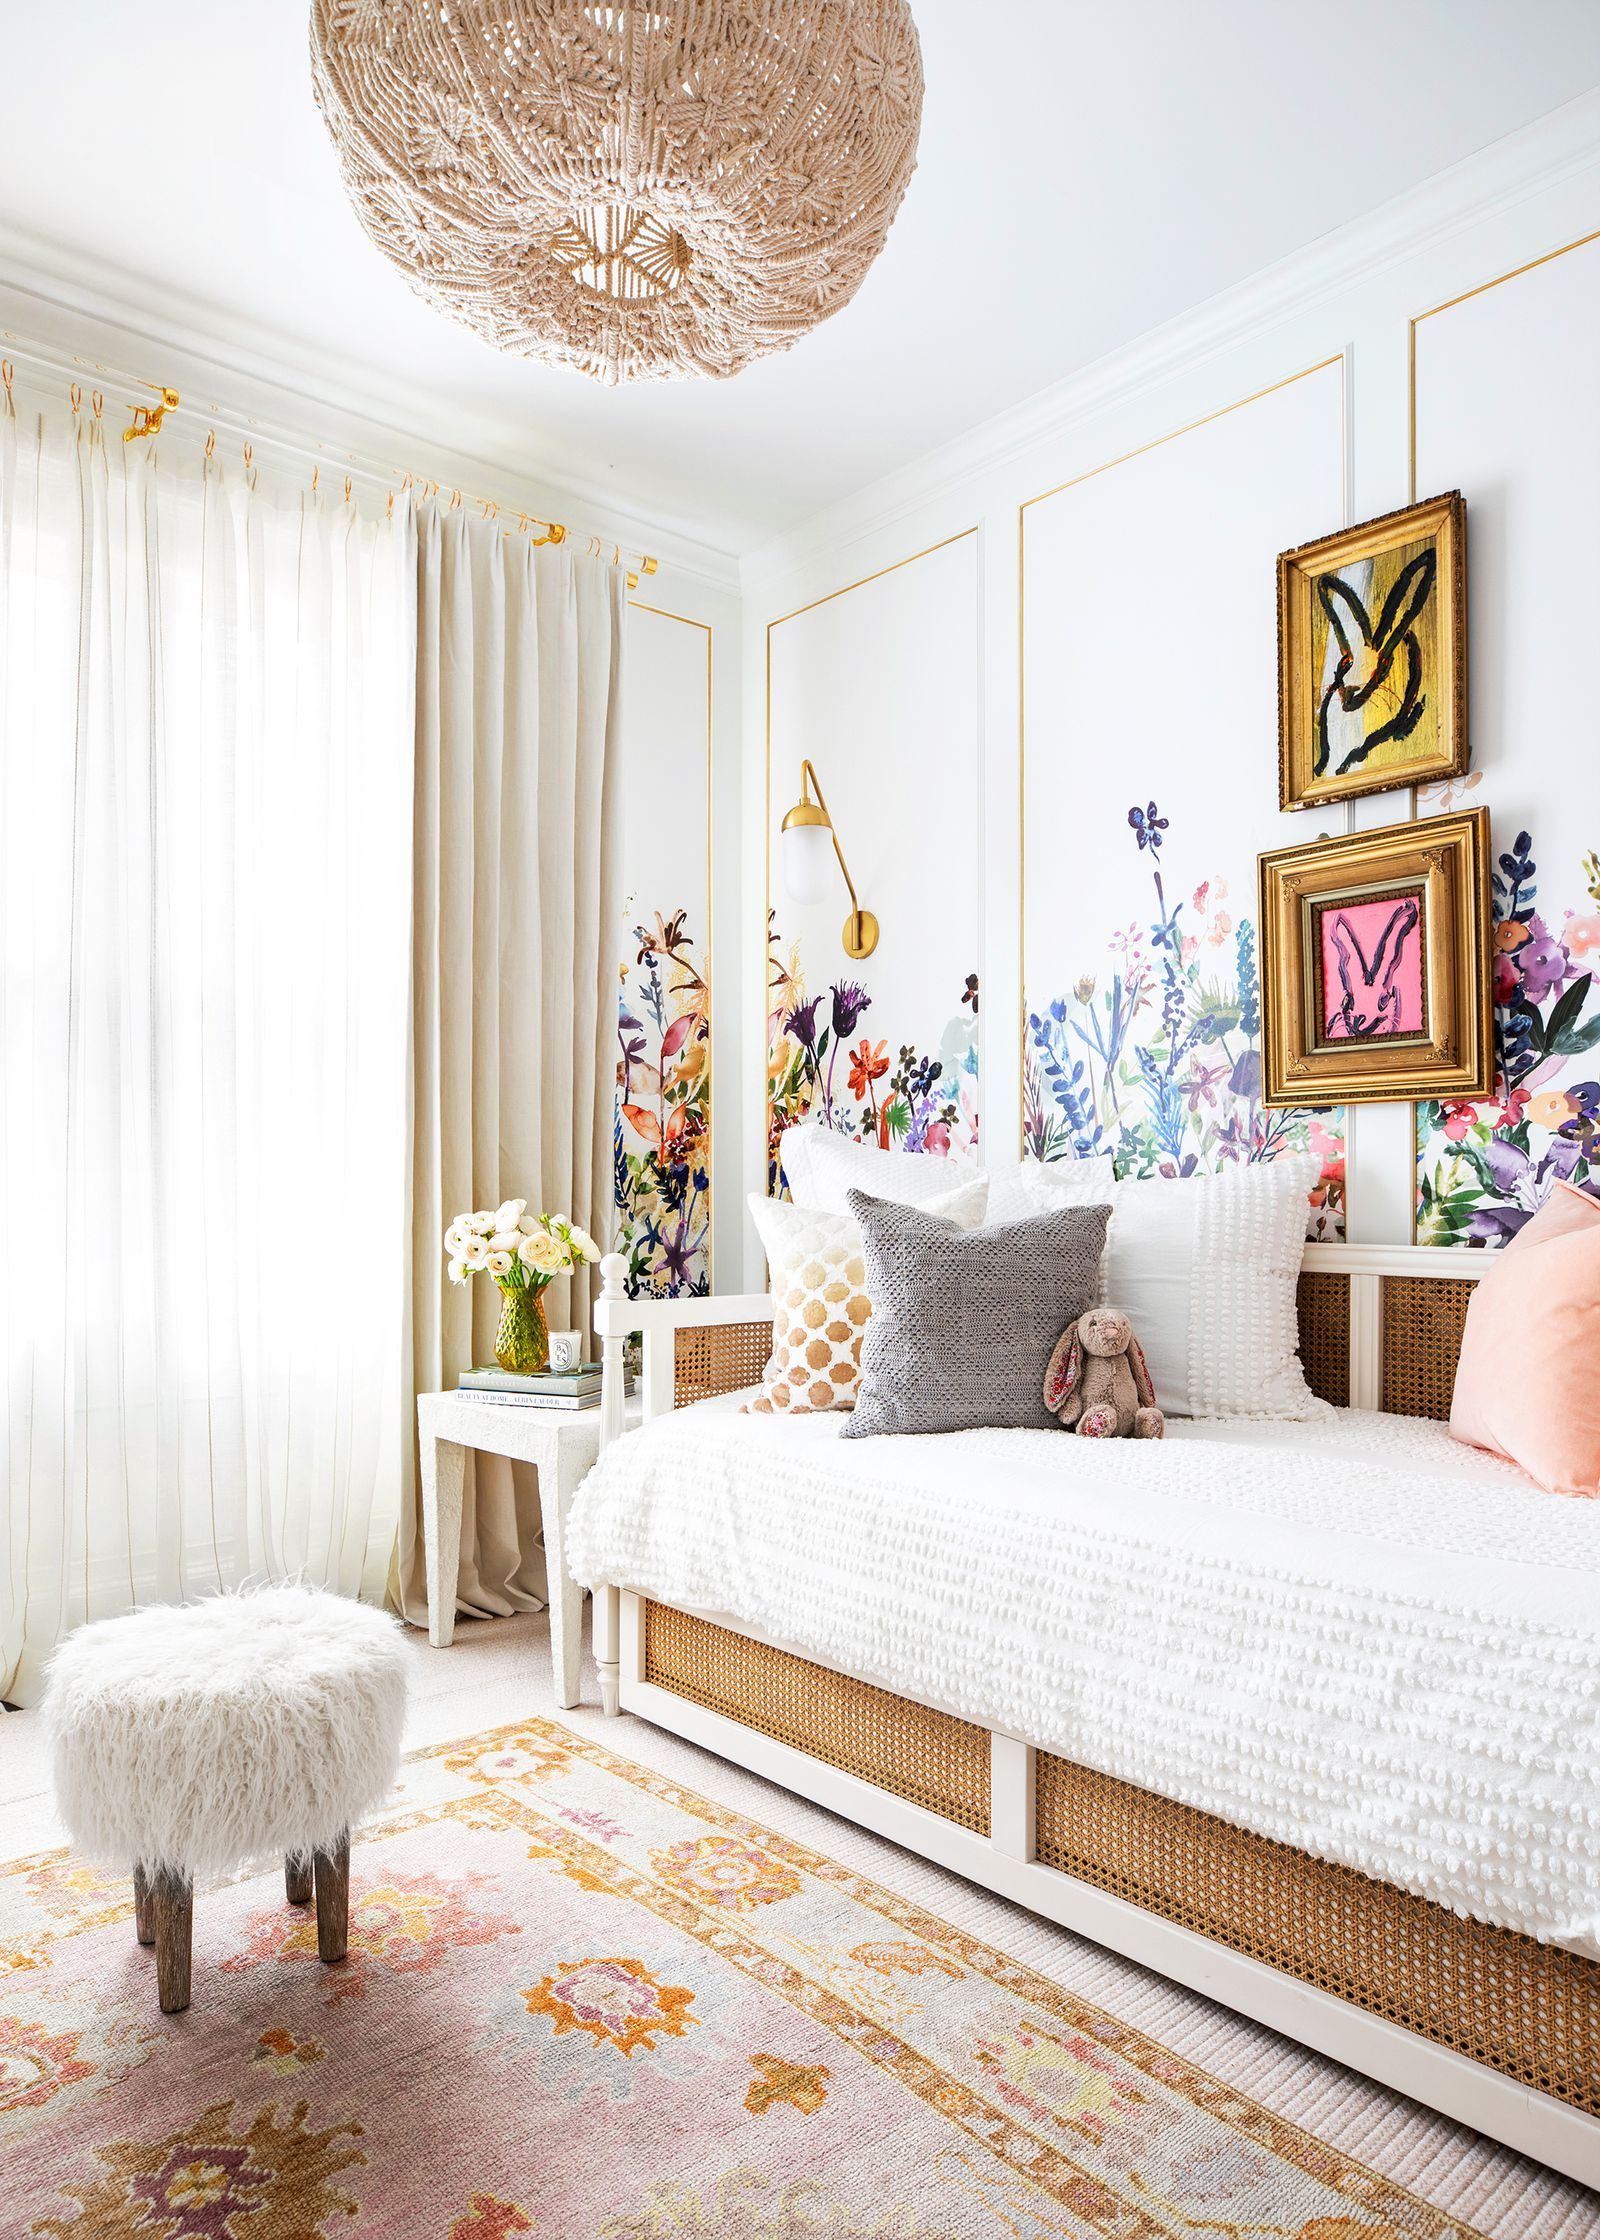 The Most Stylish Kids' Rooms We've Ever Seen